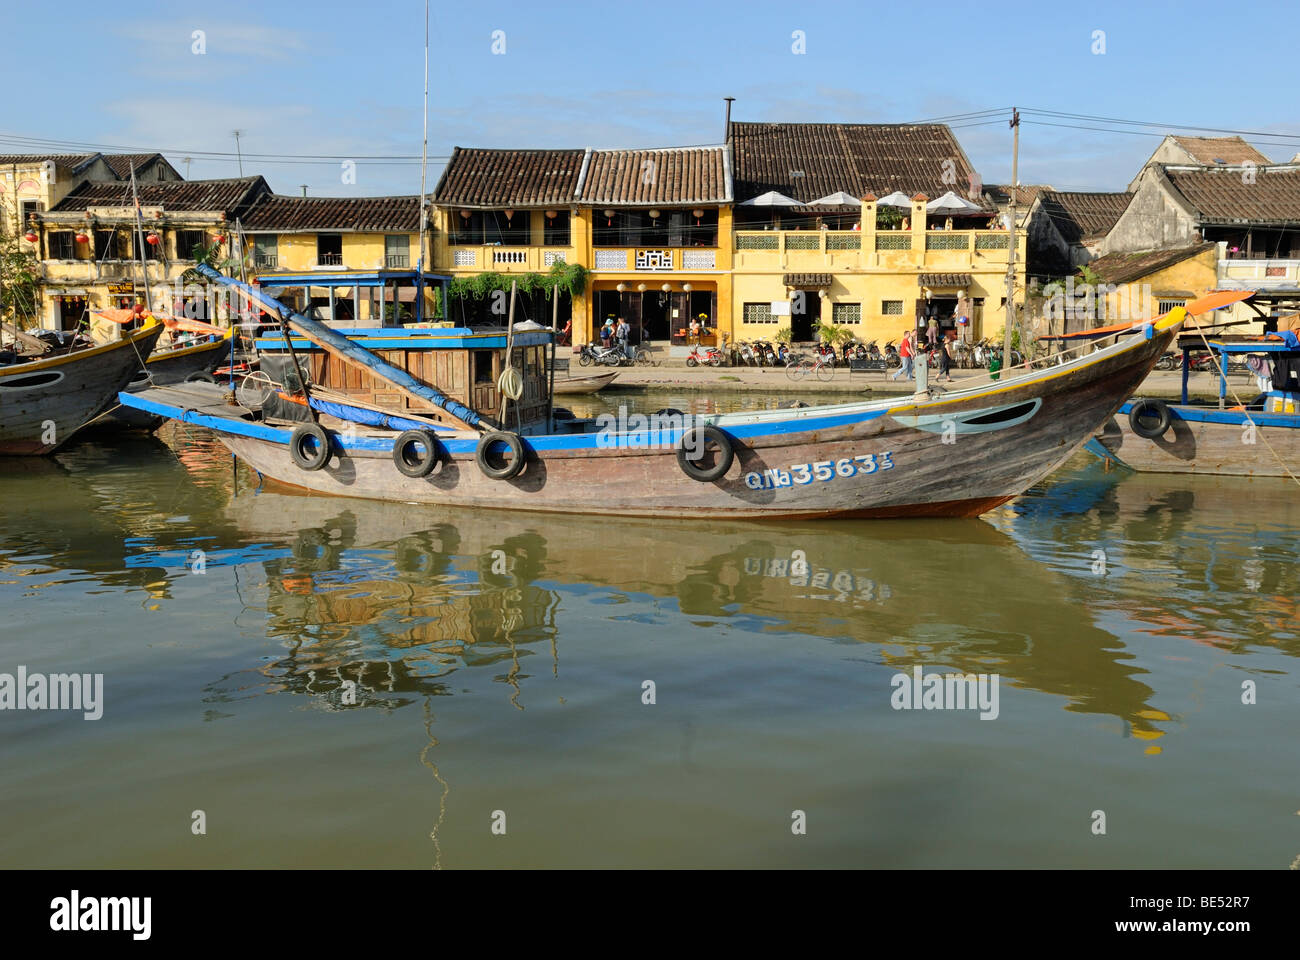 Fishing boat in the harbor of Hoi An, UNESCO World Heritage Site, Vietnam, Asia Stock Photo